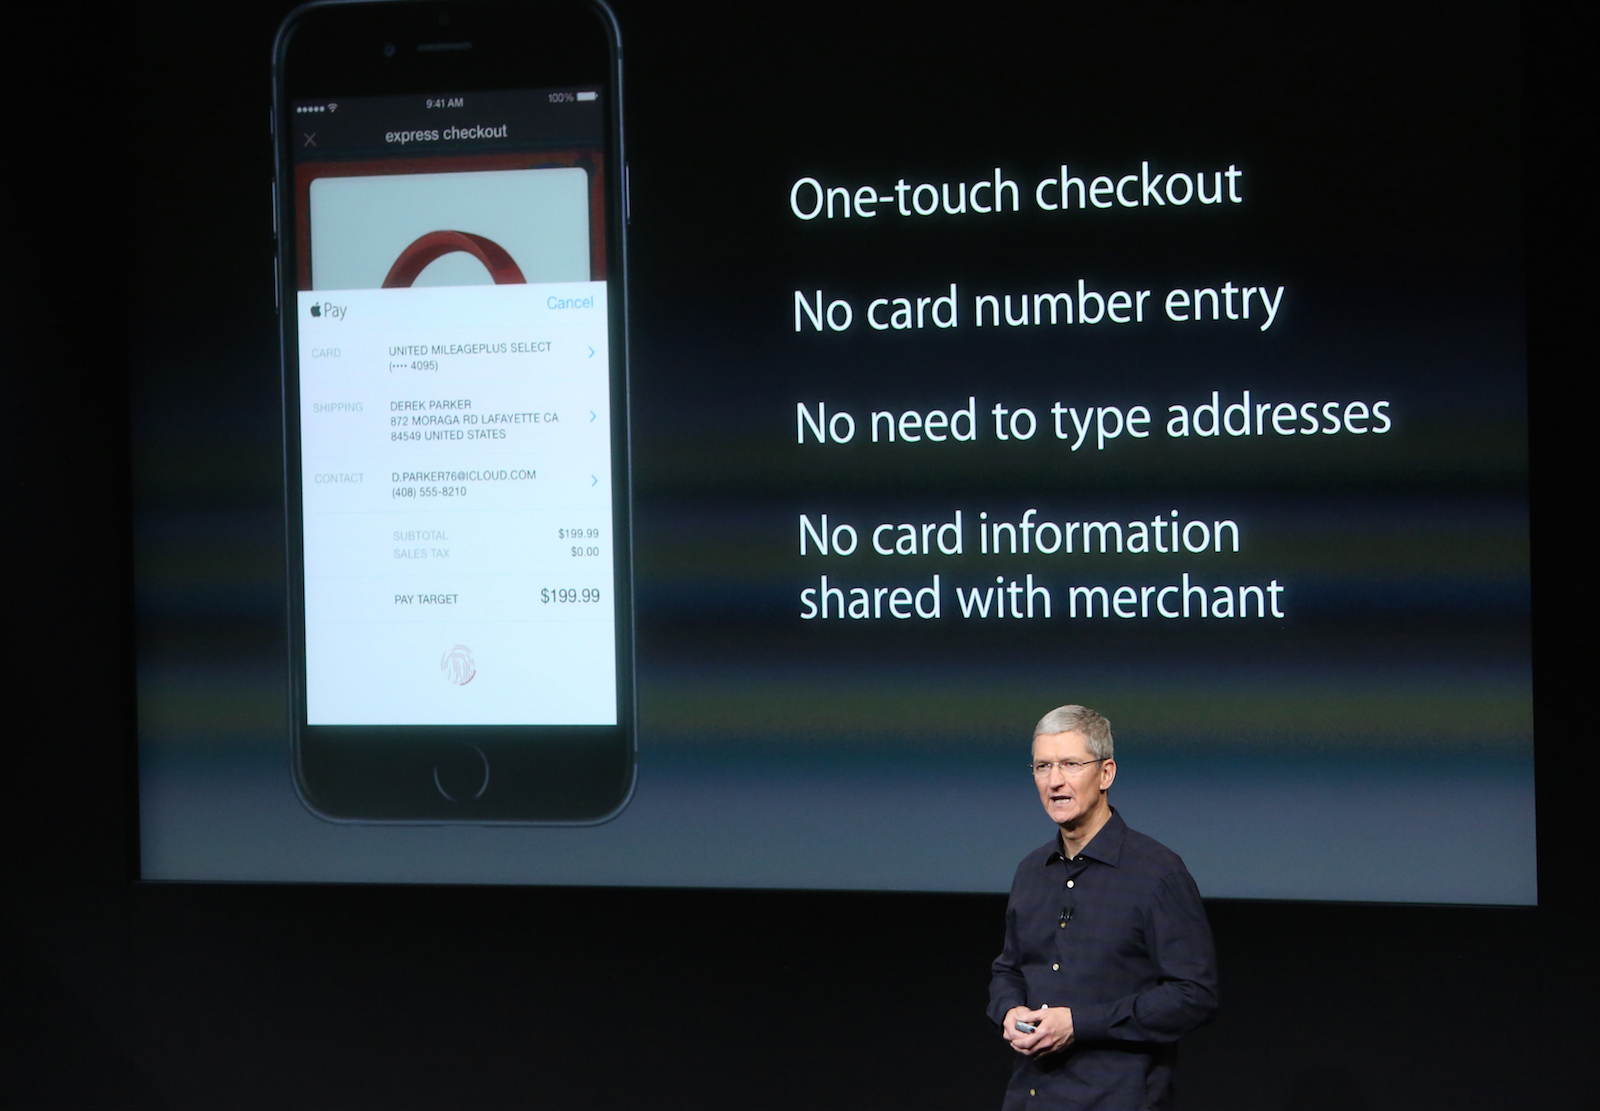 Apple CEO Tim Cook speaks about the Apple Pay service during a presentation at Apple headquarters in Cupertino, California October 16, 2014.